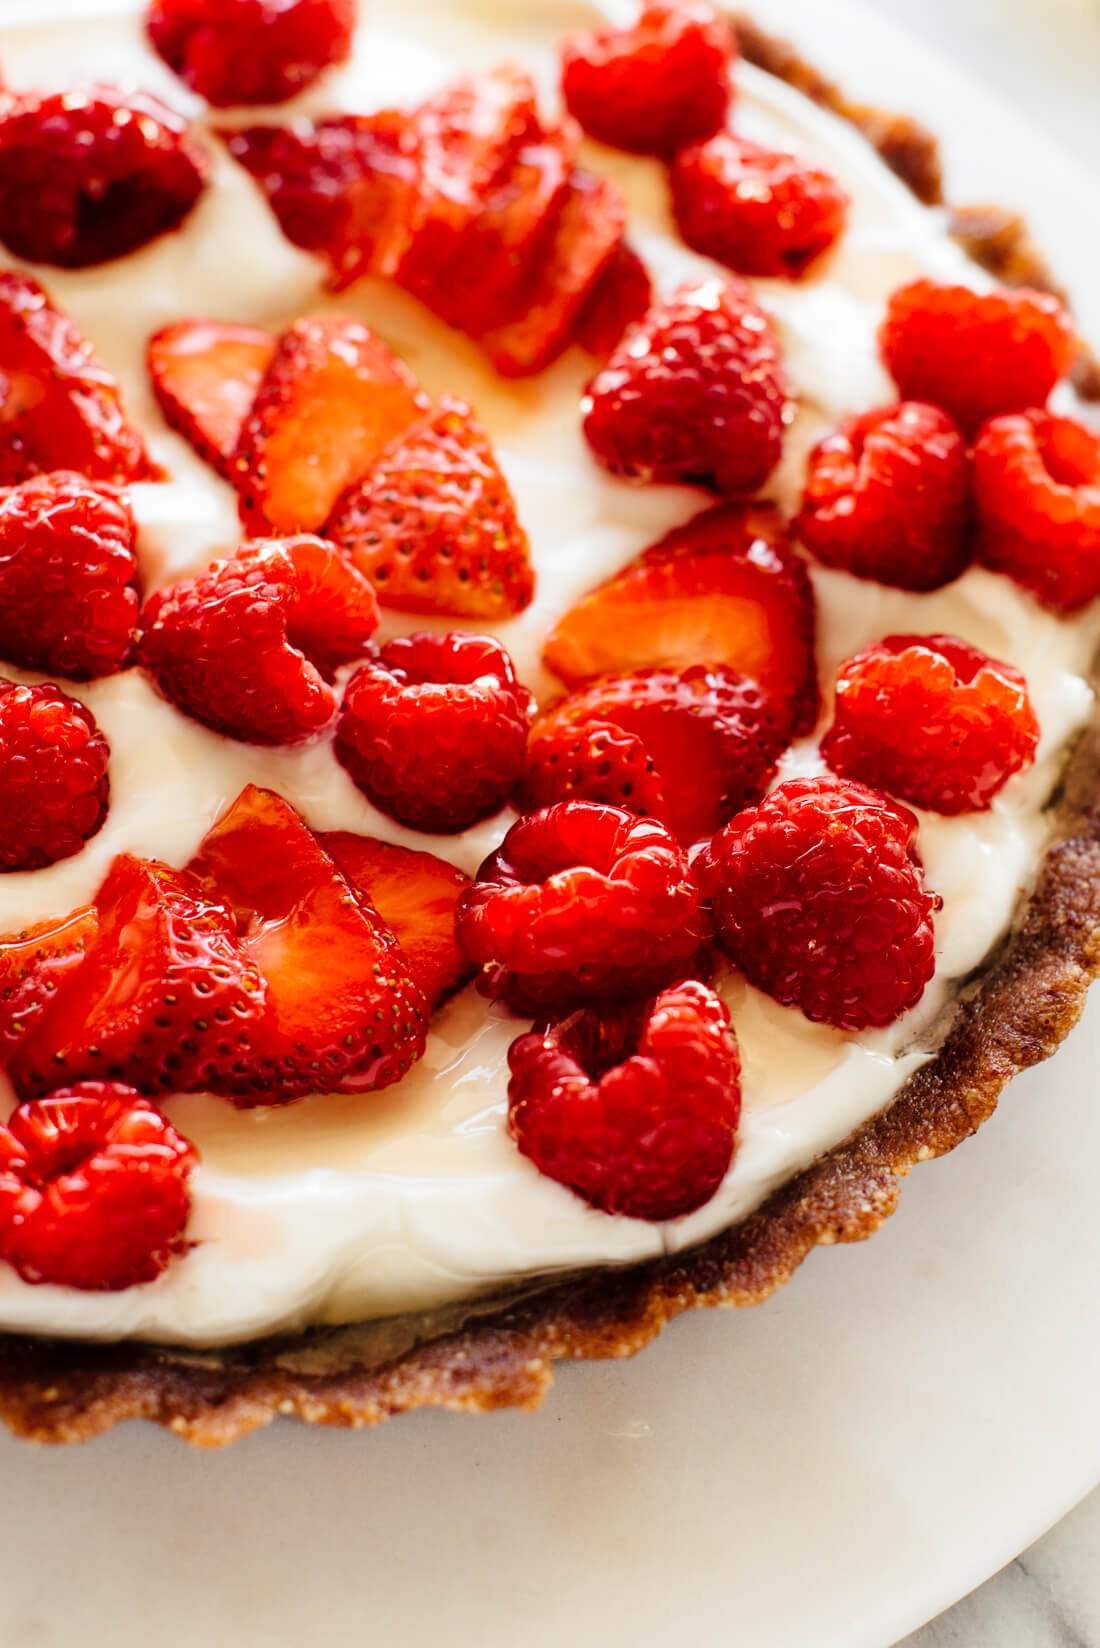 Greek yogurt tart with raspberries and strawberries